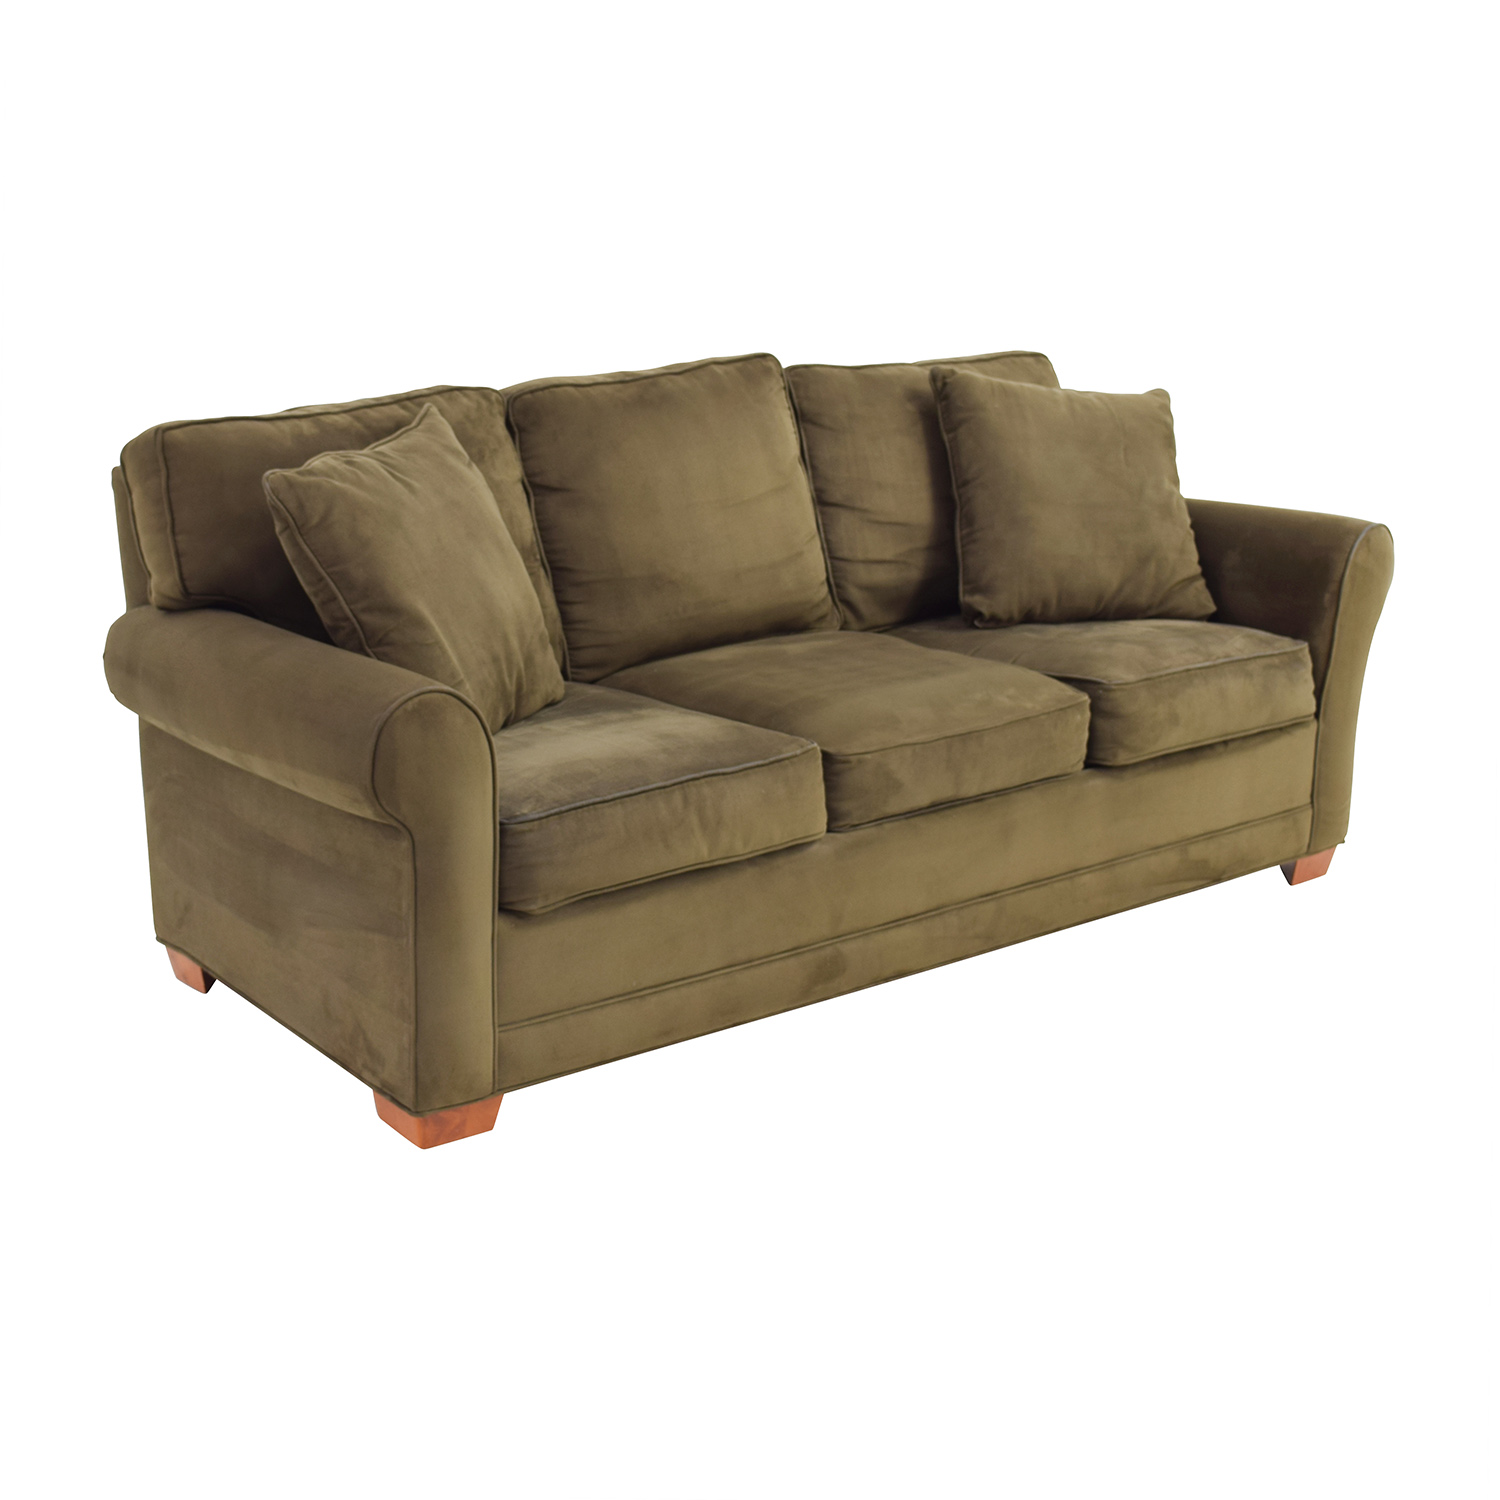 87 Off Raymour And Flanigan Raymour Flanagan Fresno Brown Microfiber Sofa Sofas